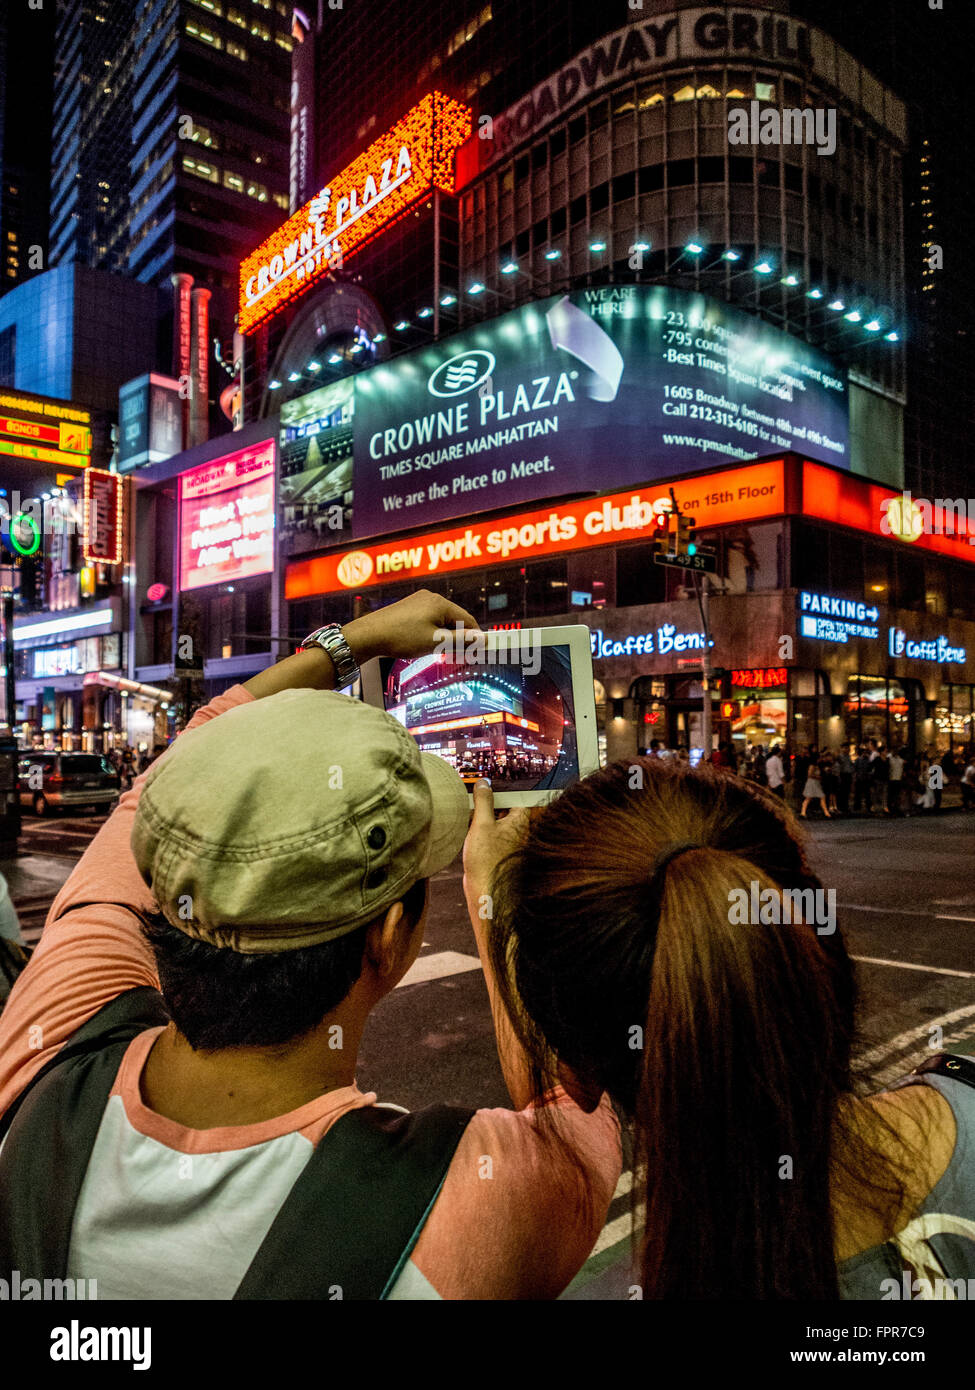 Couple taking photo on ipad of Times Square at night, New York City, USA. - Stock Image